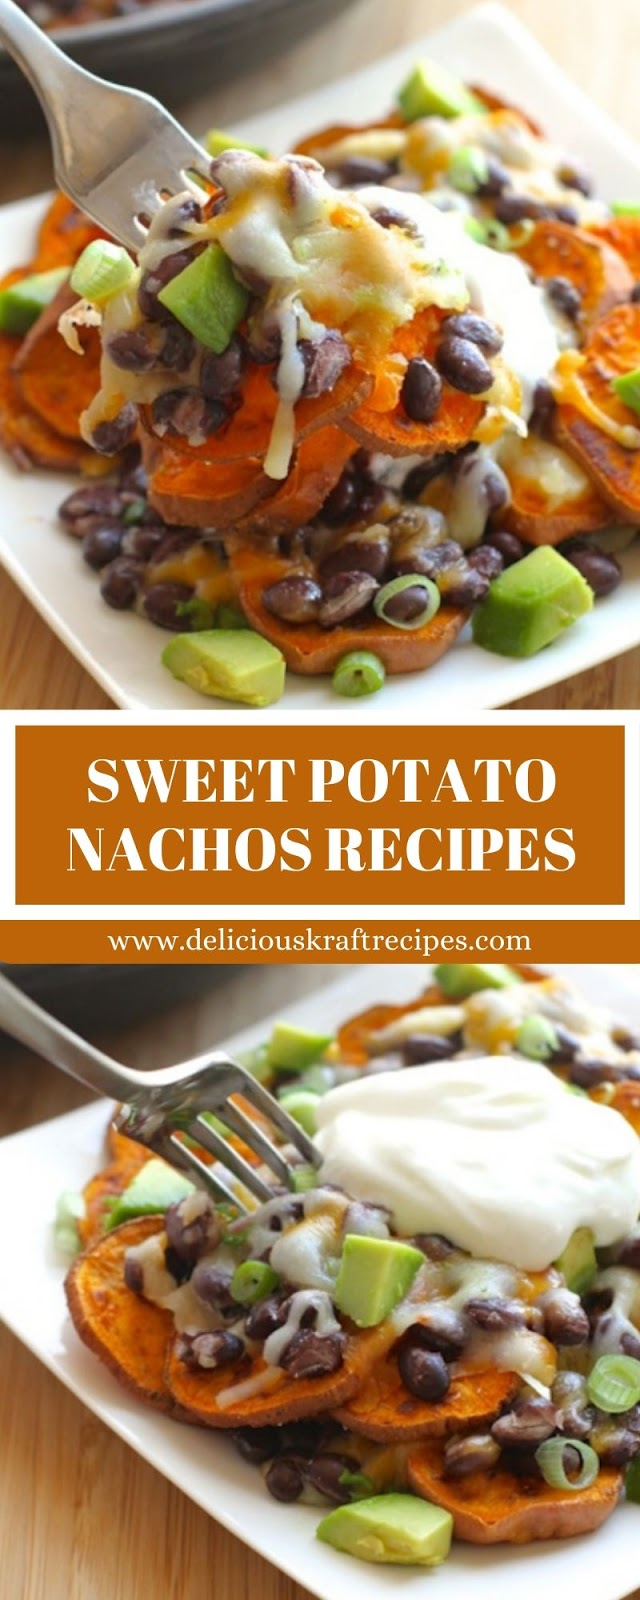 SWEET POTATO NACHOS RECIPES